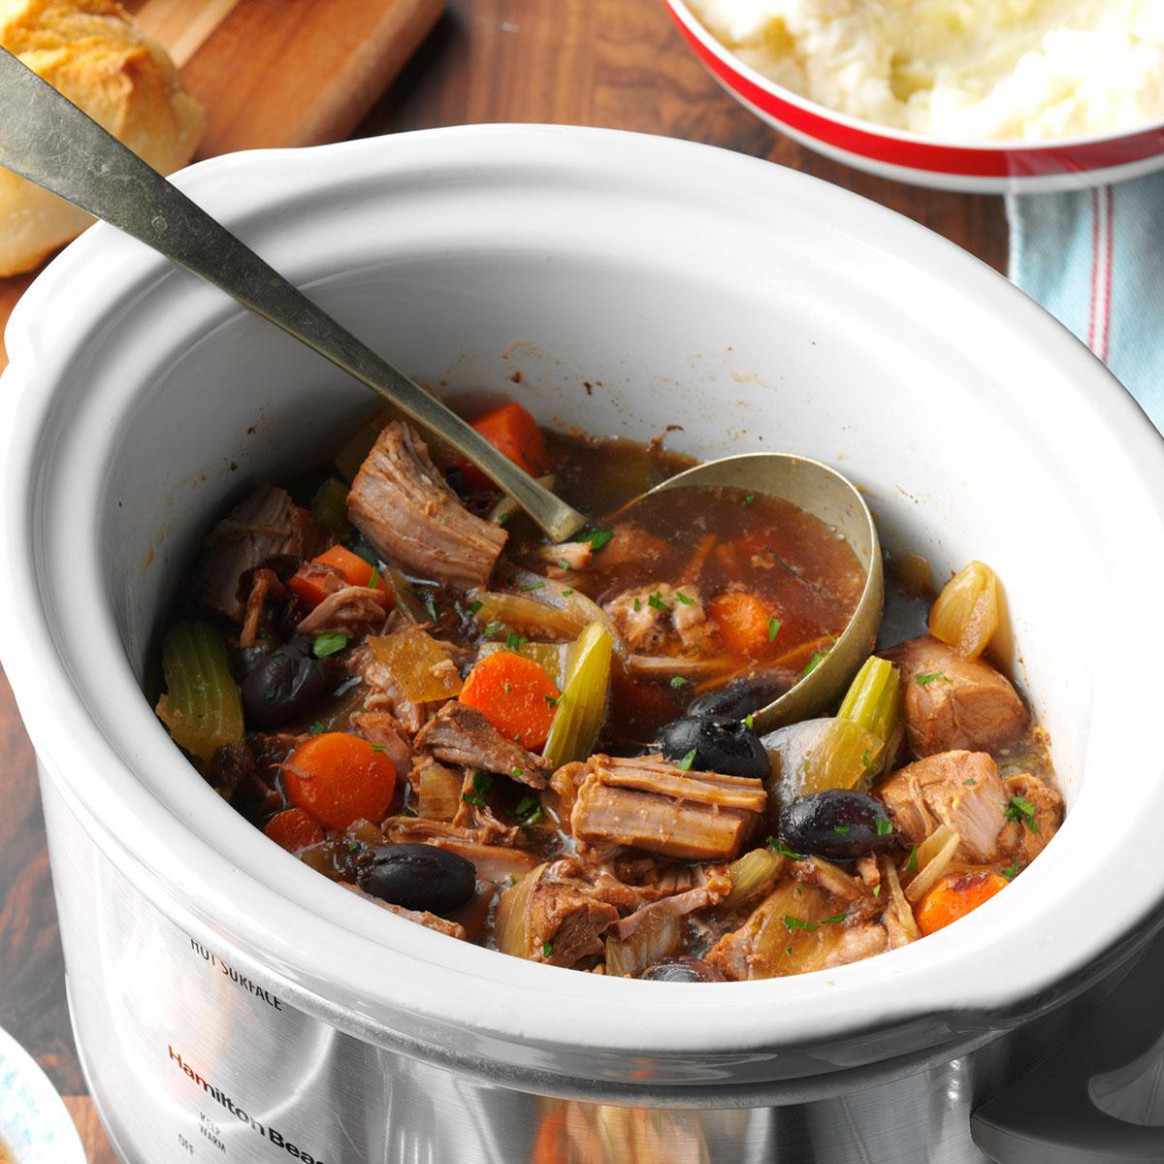 Slow-Cooked Pork Stew - slow cooker recipes nz vegetarian